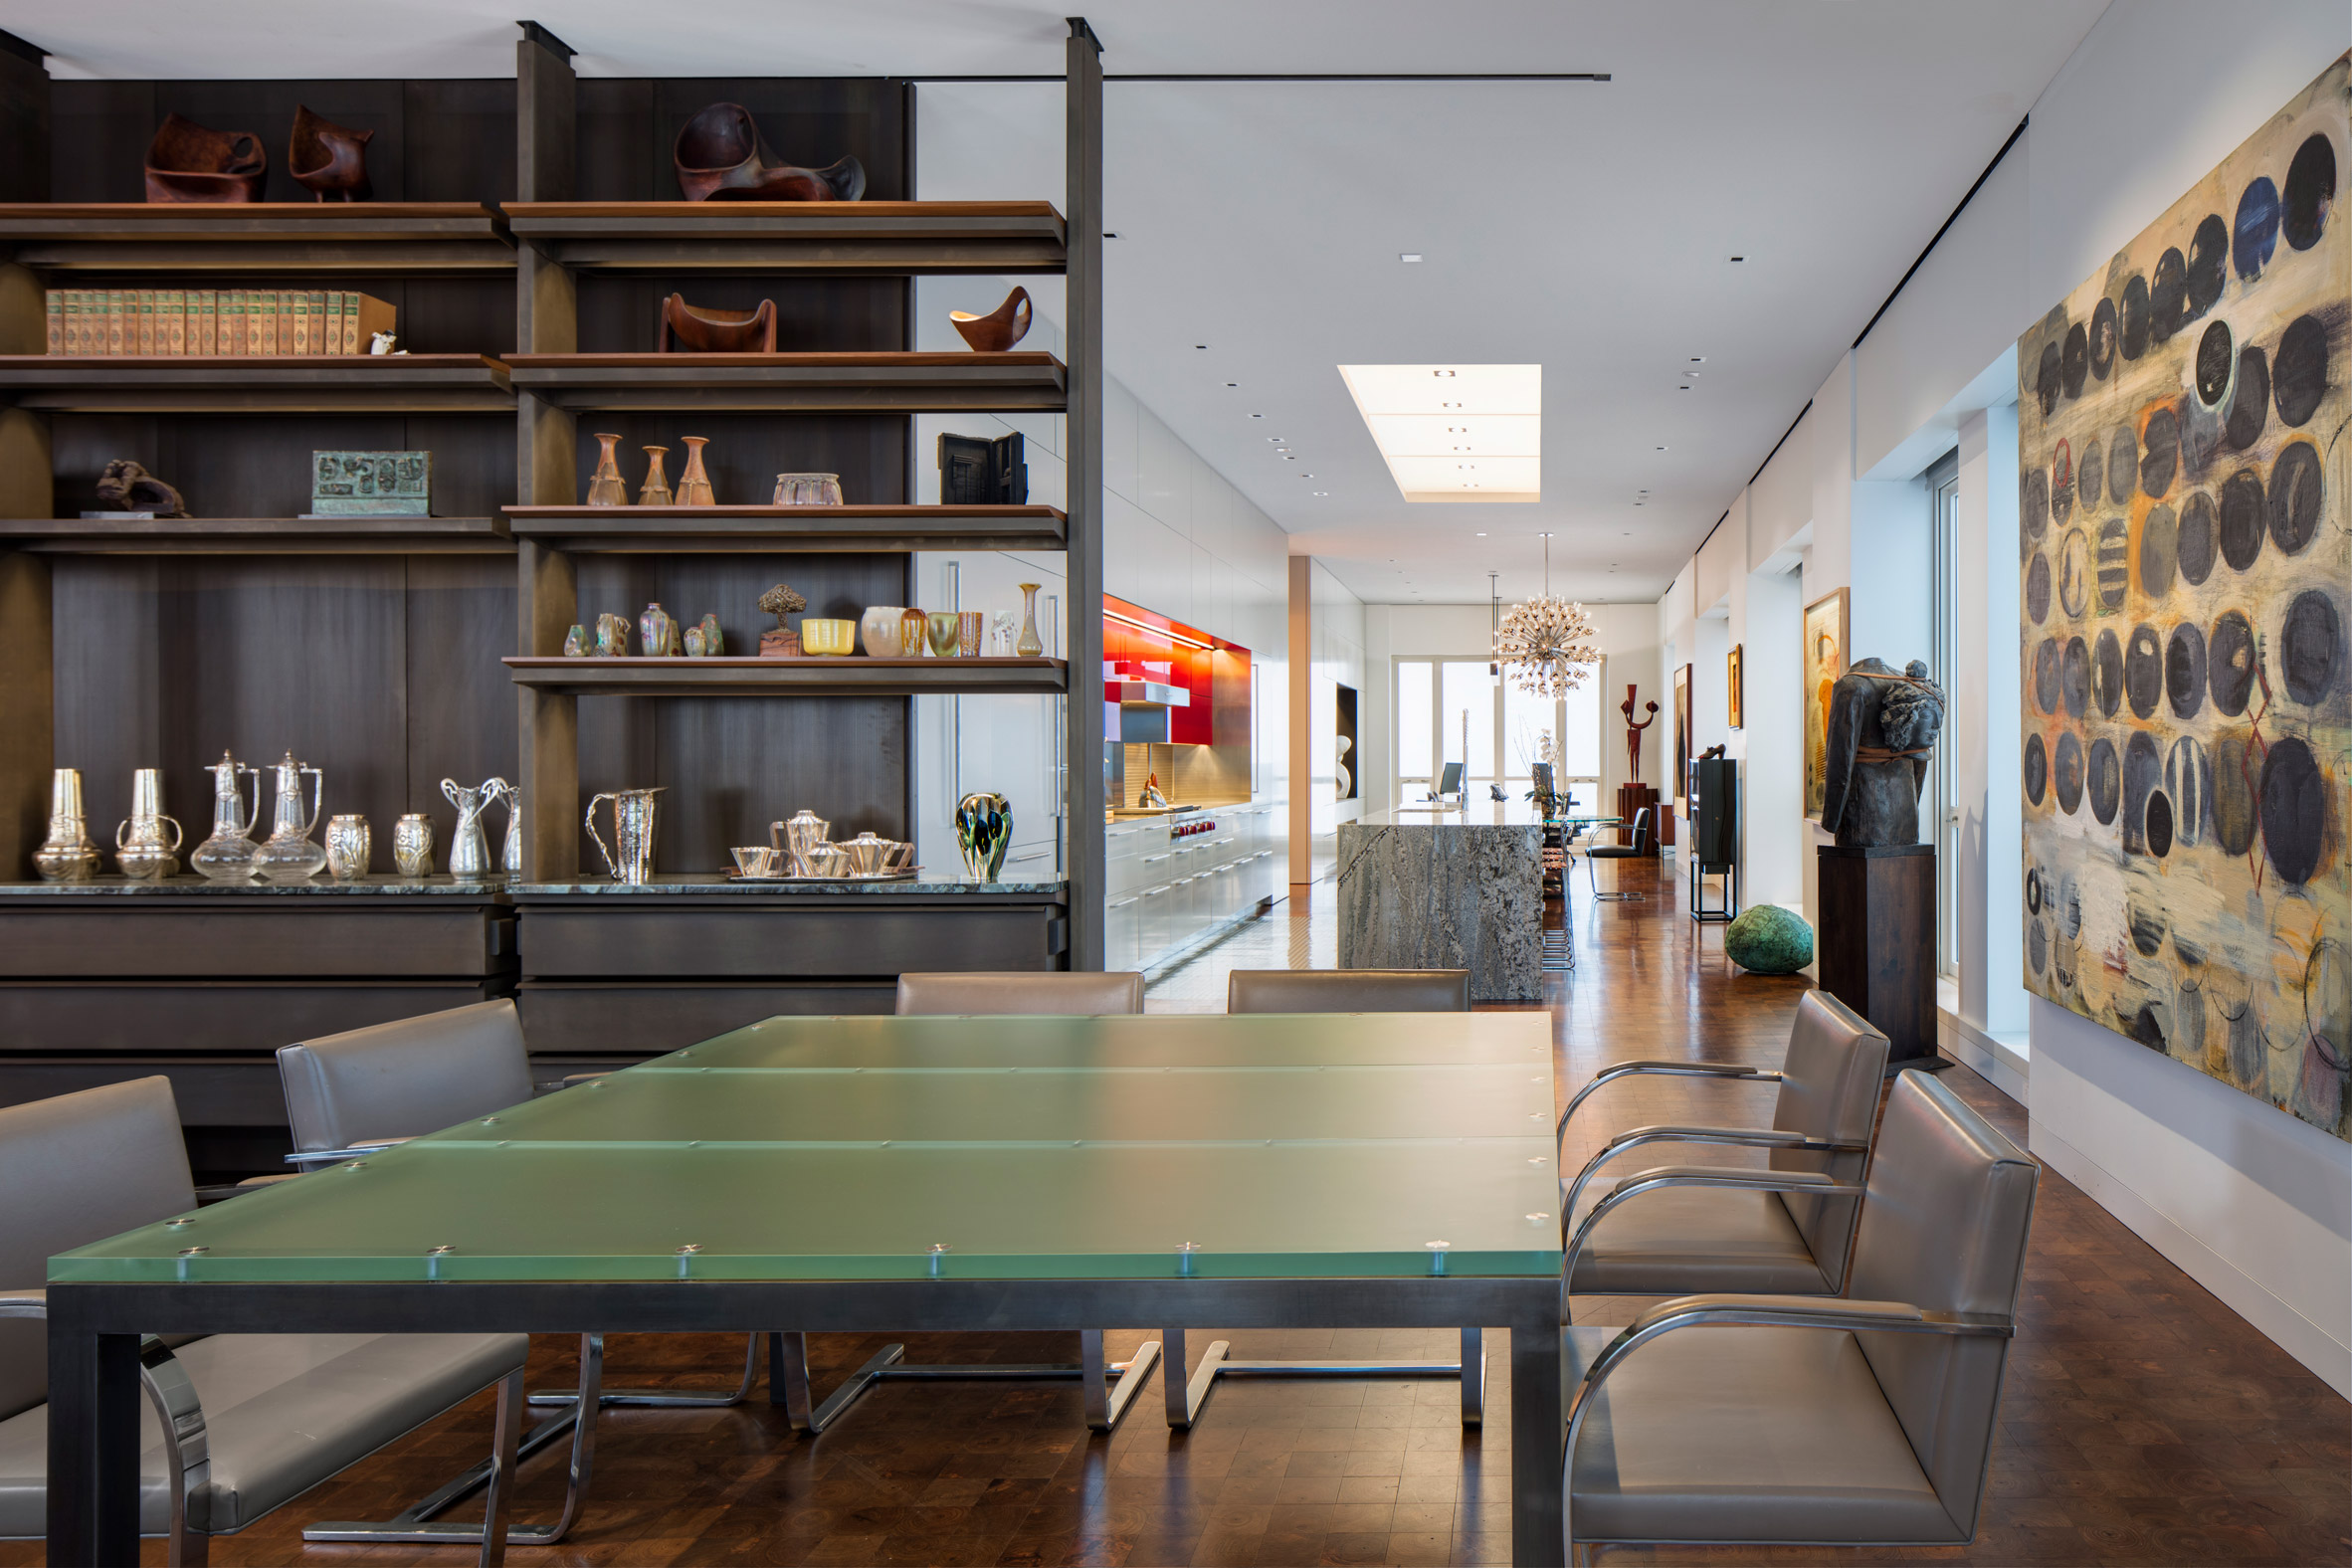 Home with an art-filled interior